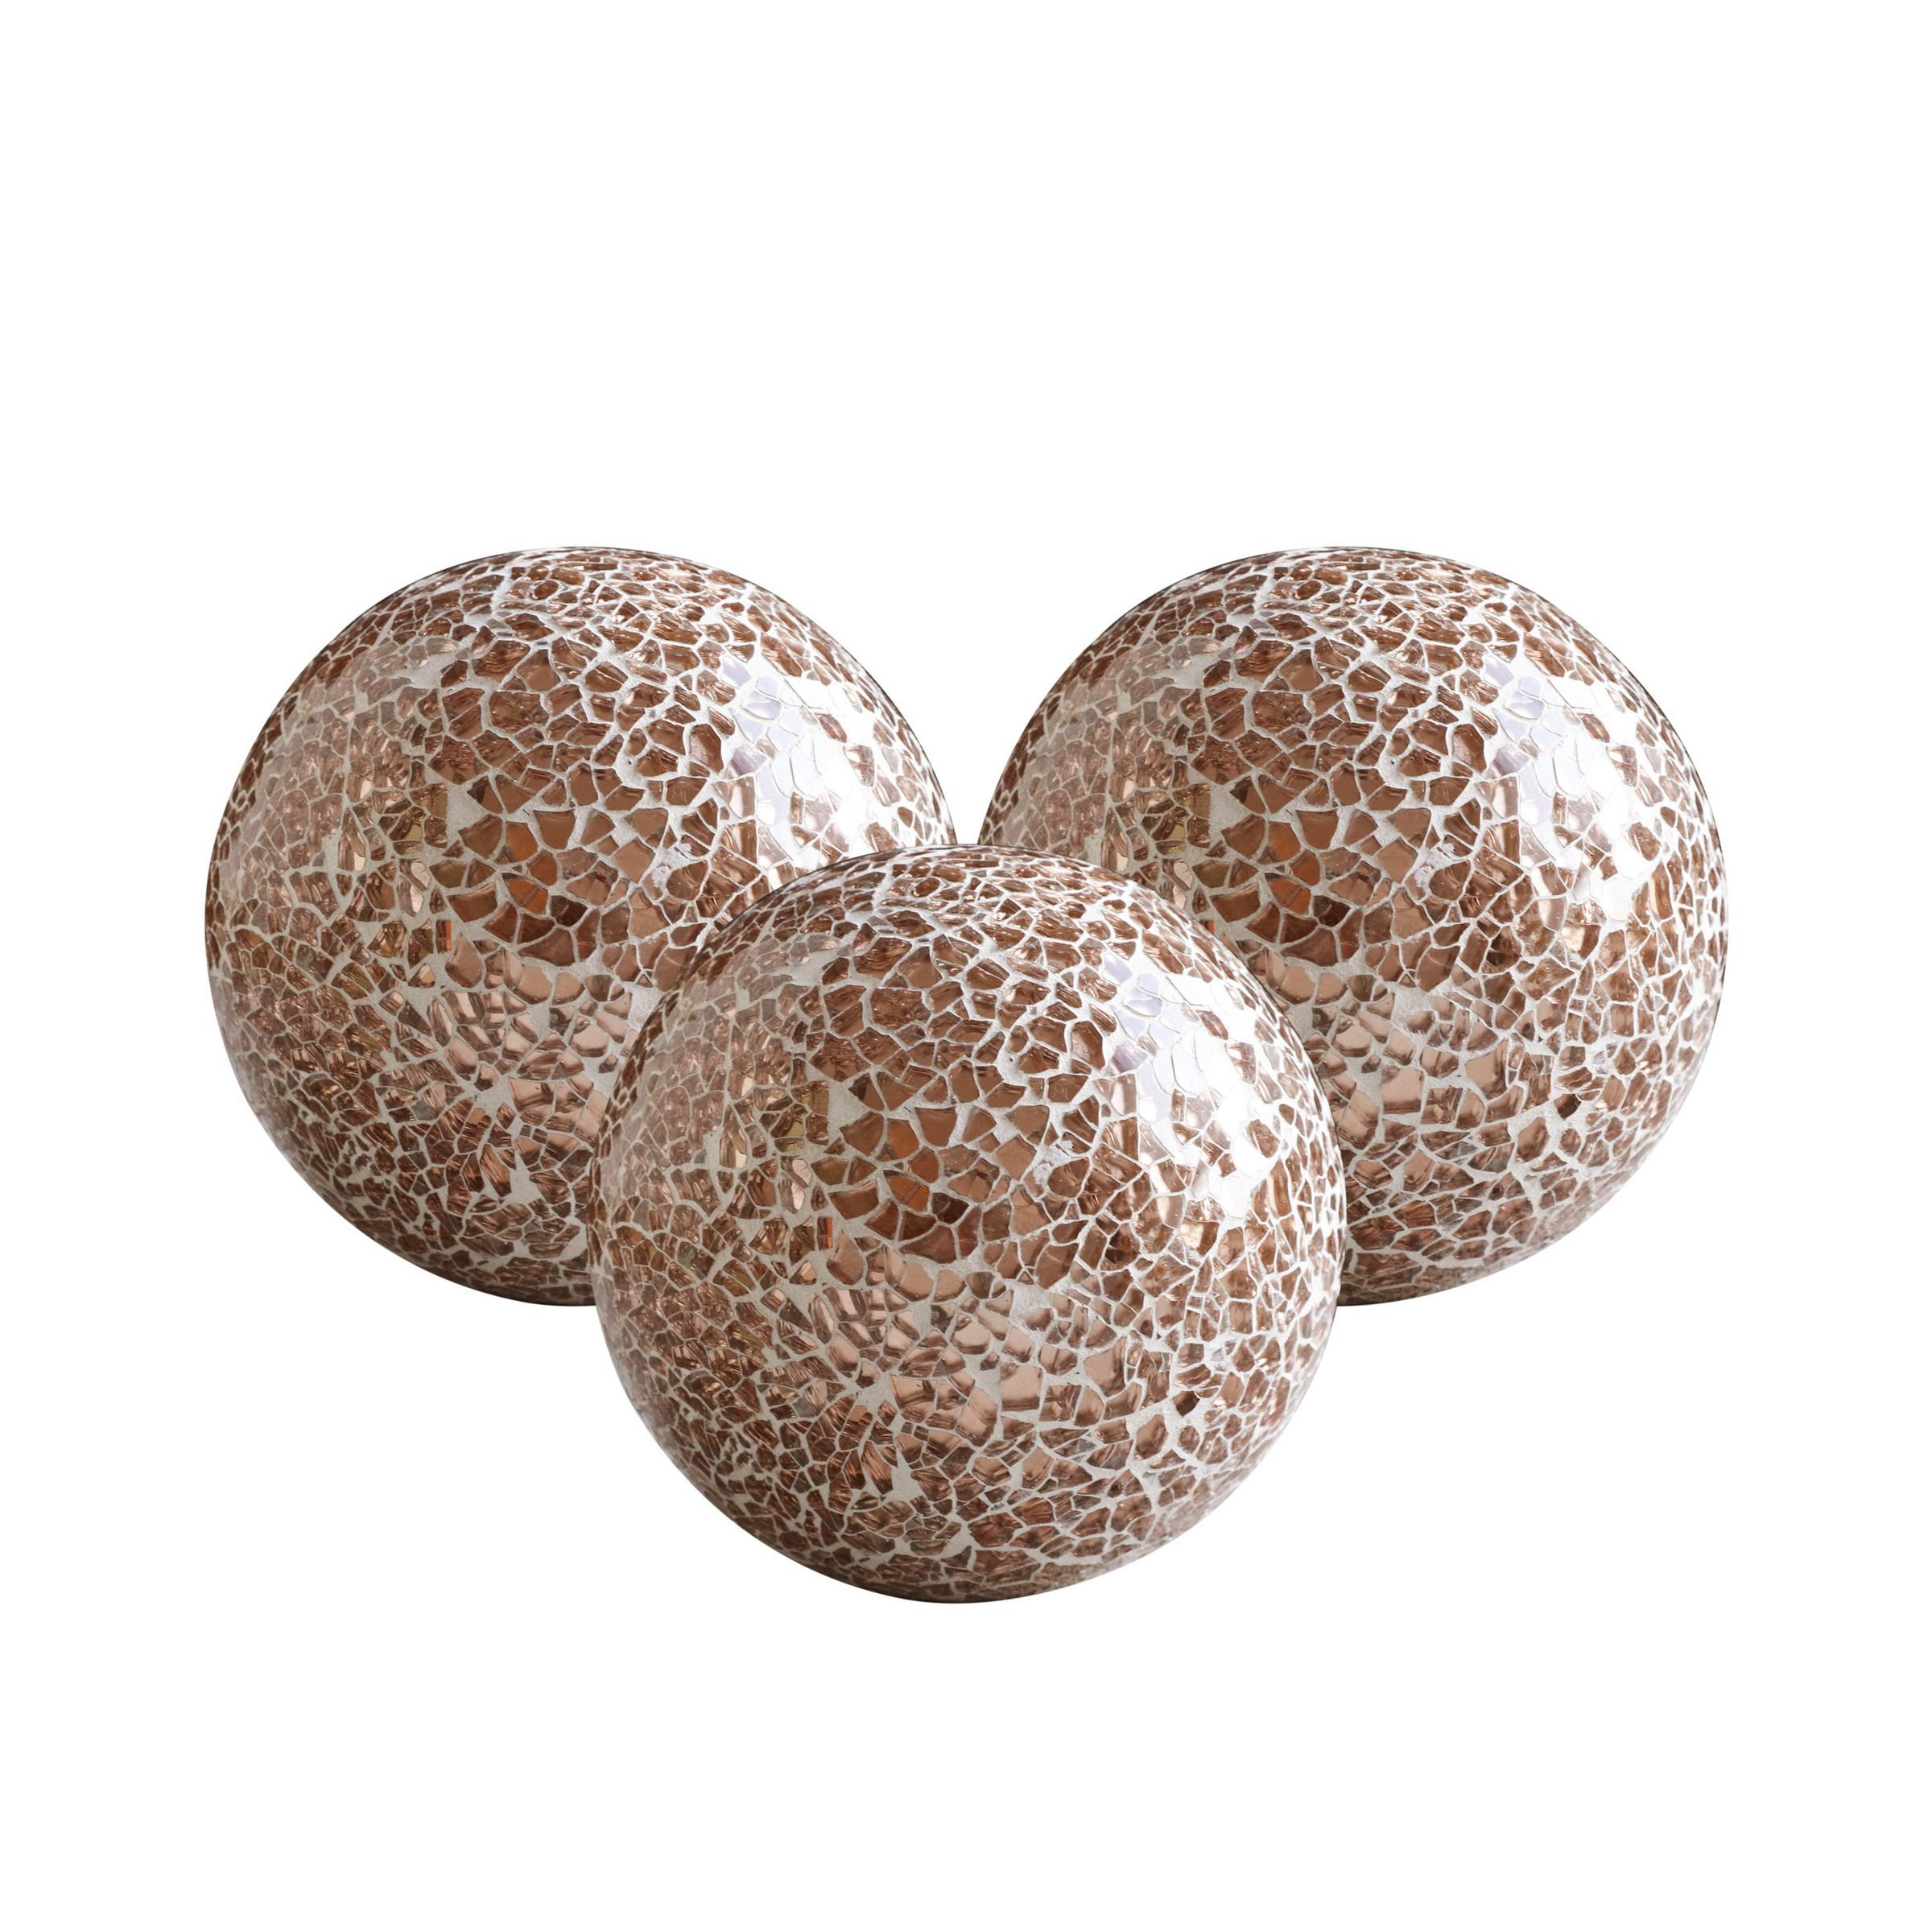 Decorative Orbs Set Of 3 Glass Mosaic Sphere Balls Diameter 4 Rose Gold For Bowls Vases And Table Centerpieces Walmart Com In 2020 Mosaic Glass Table Centerpieces Sphere Ball